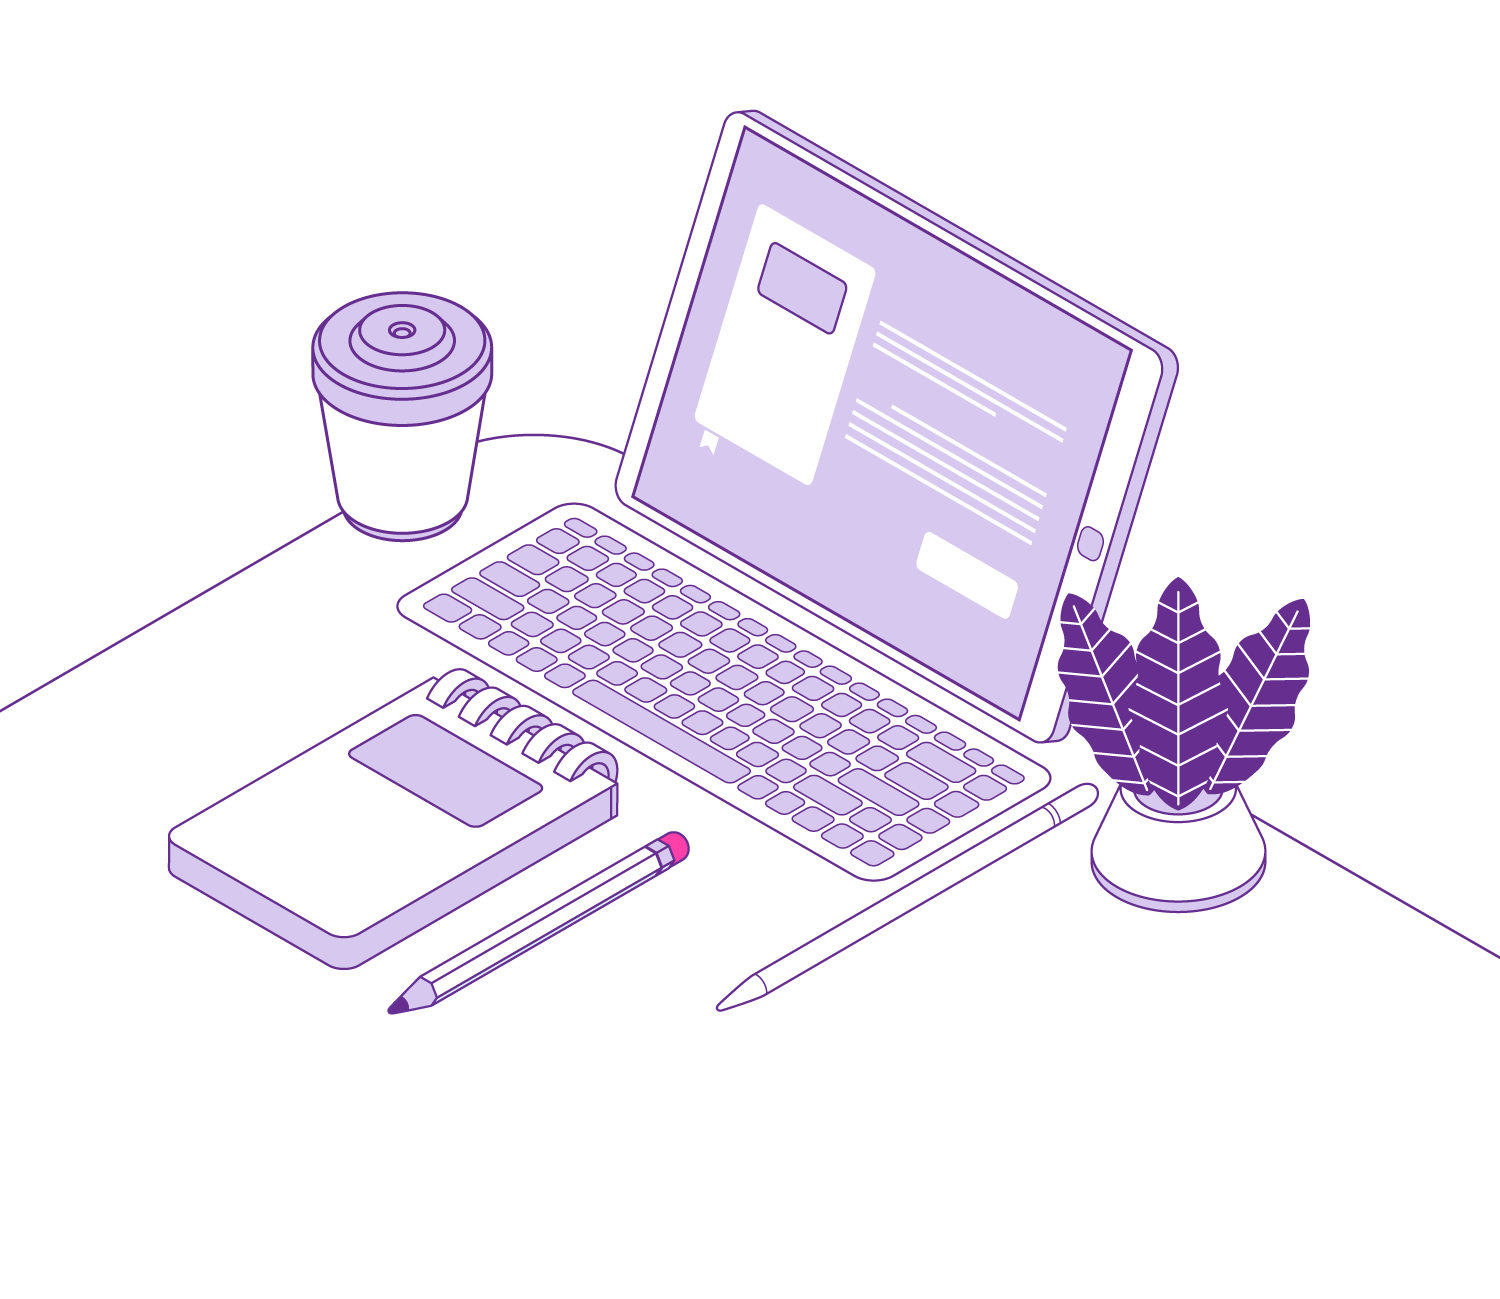 simplicity-laptop-purple